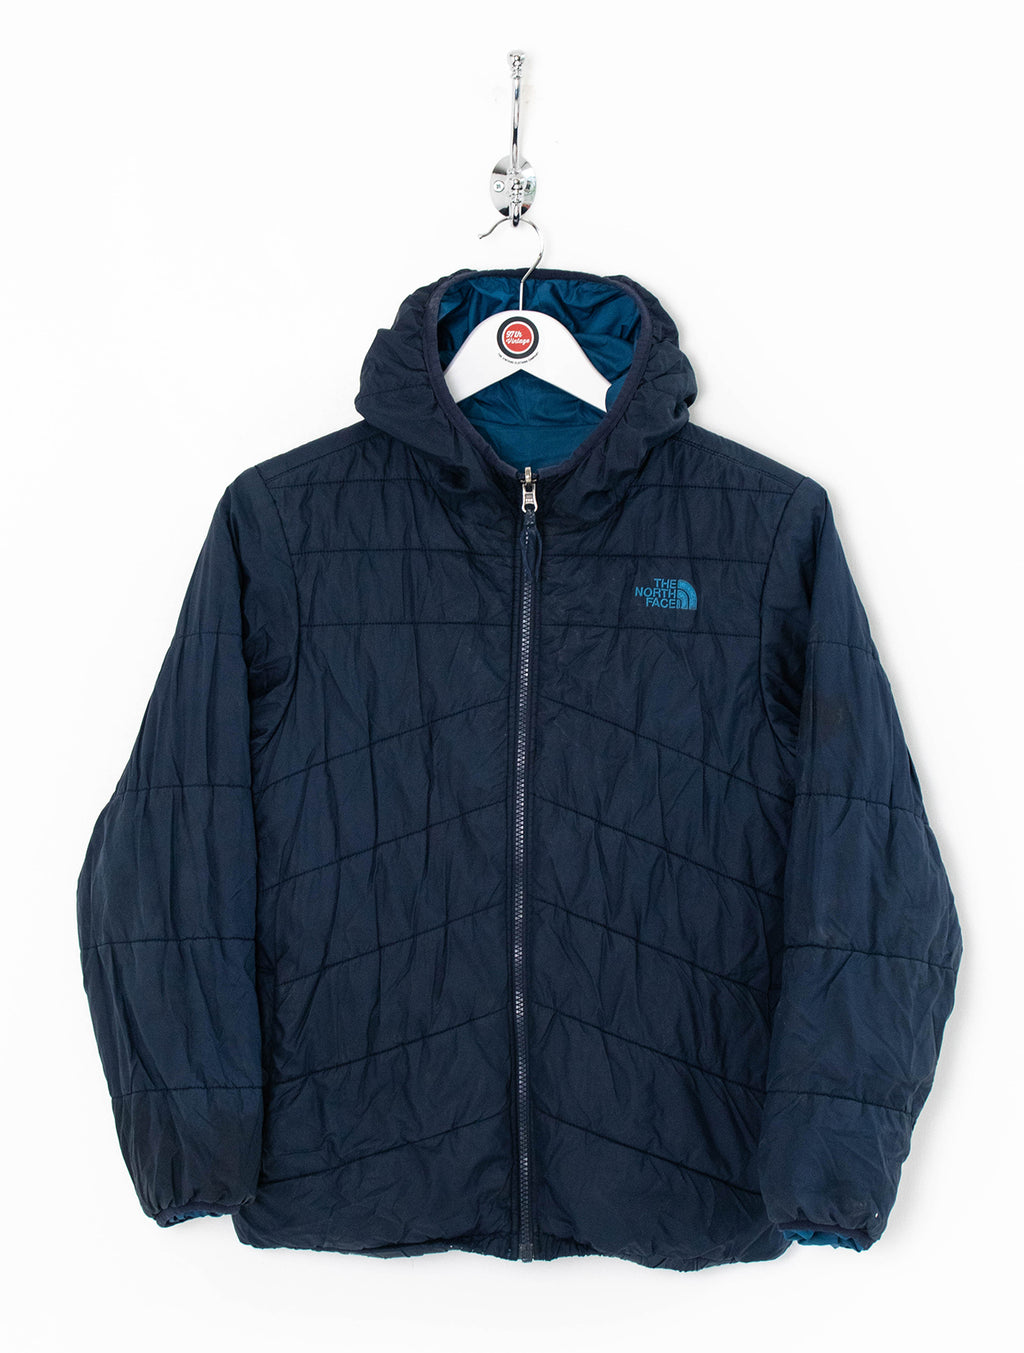 The North Face Reversible Puffer Jacket (XS)